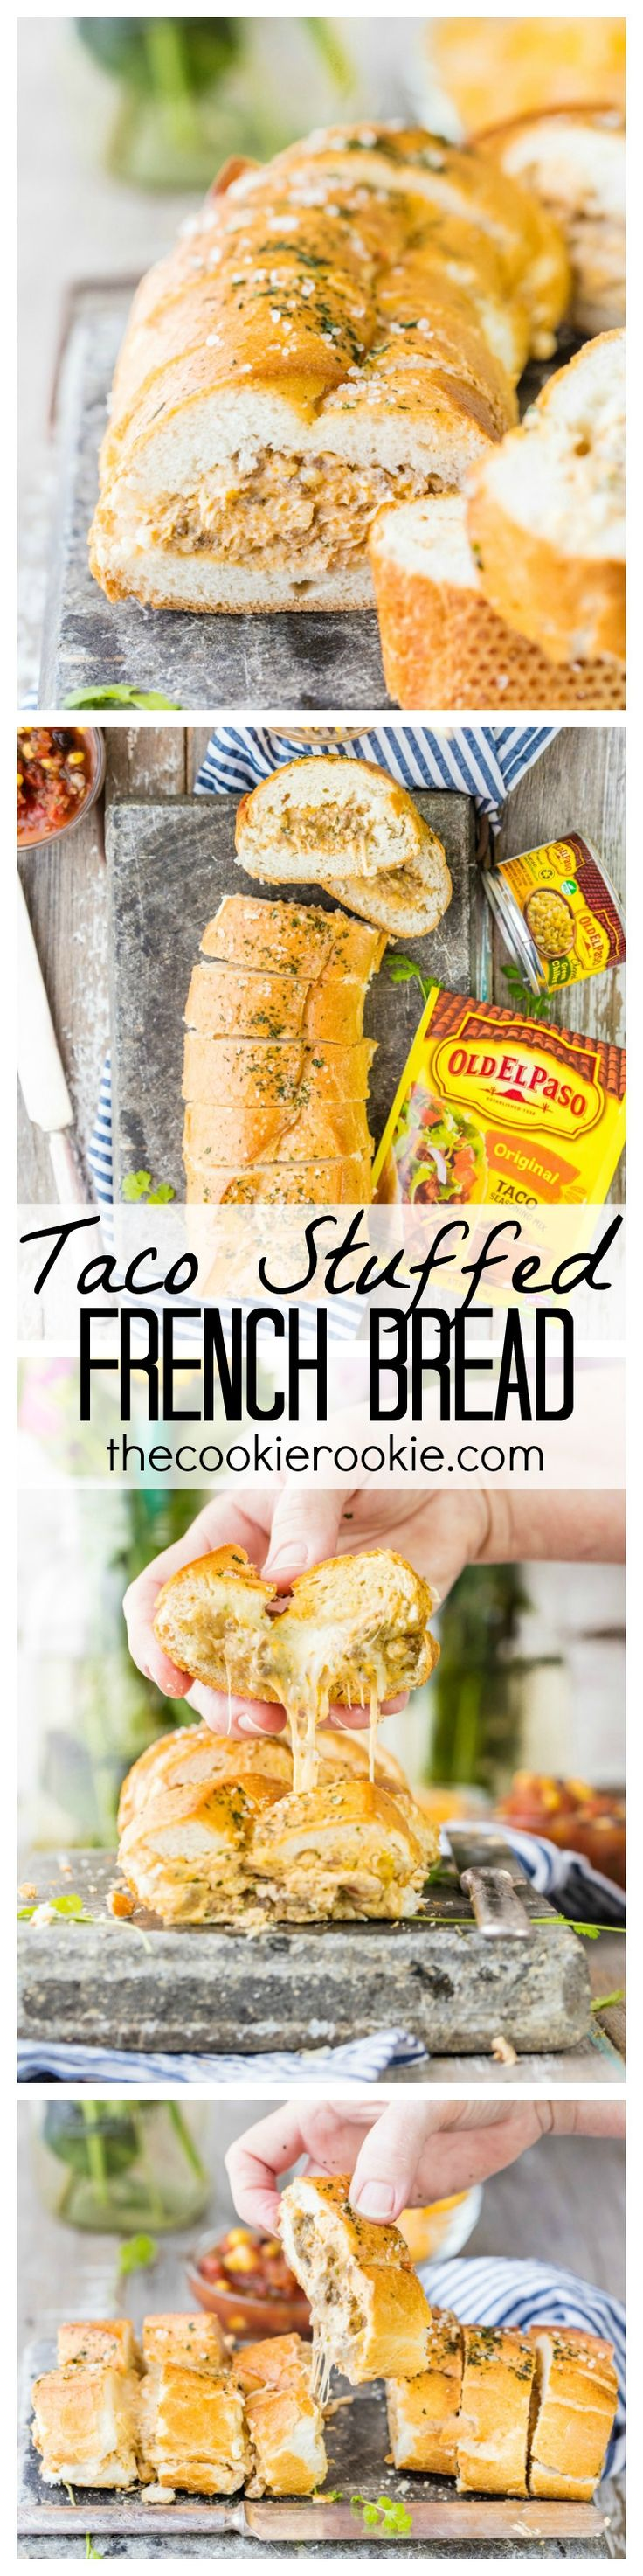 Taco Stuffed French Bread Baguette is the PERFECT appetizer for any party. WOW your guests with this delicious and CHEESY appetizer or meal. Stuffed with taco meat, cheese, and cream cheese. YUM!